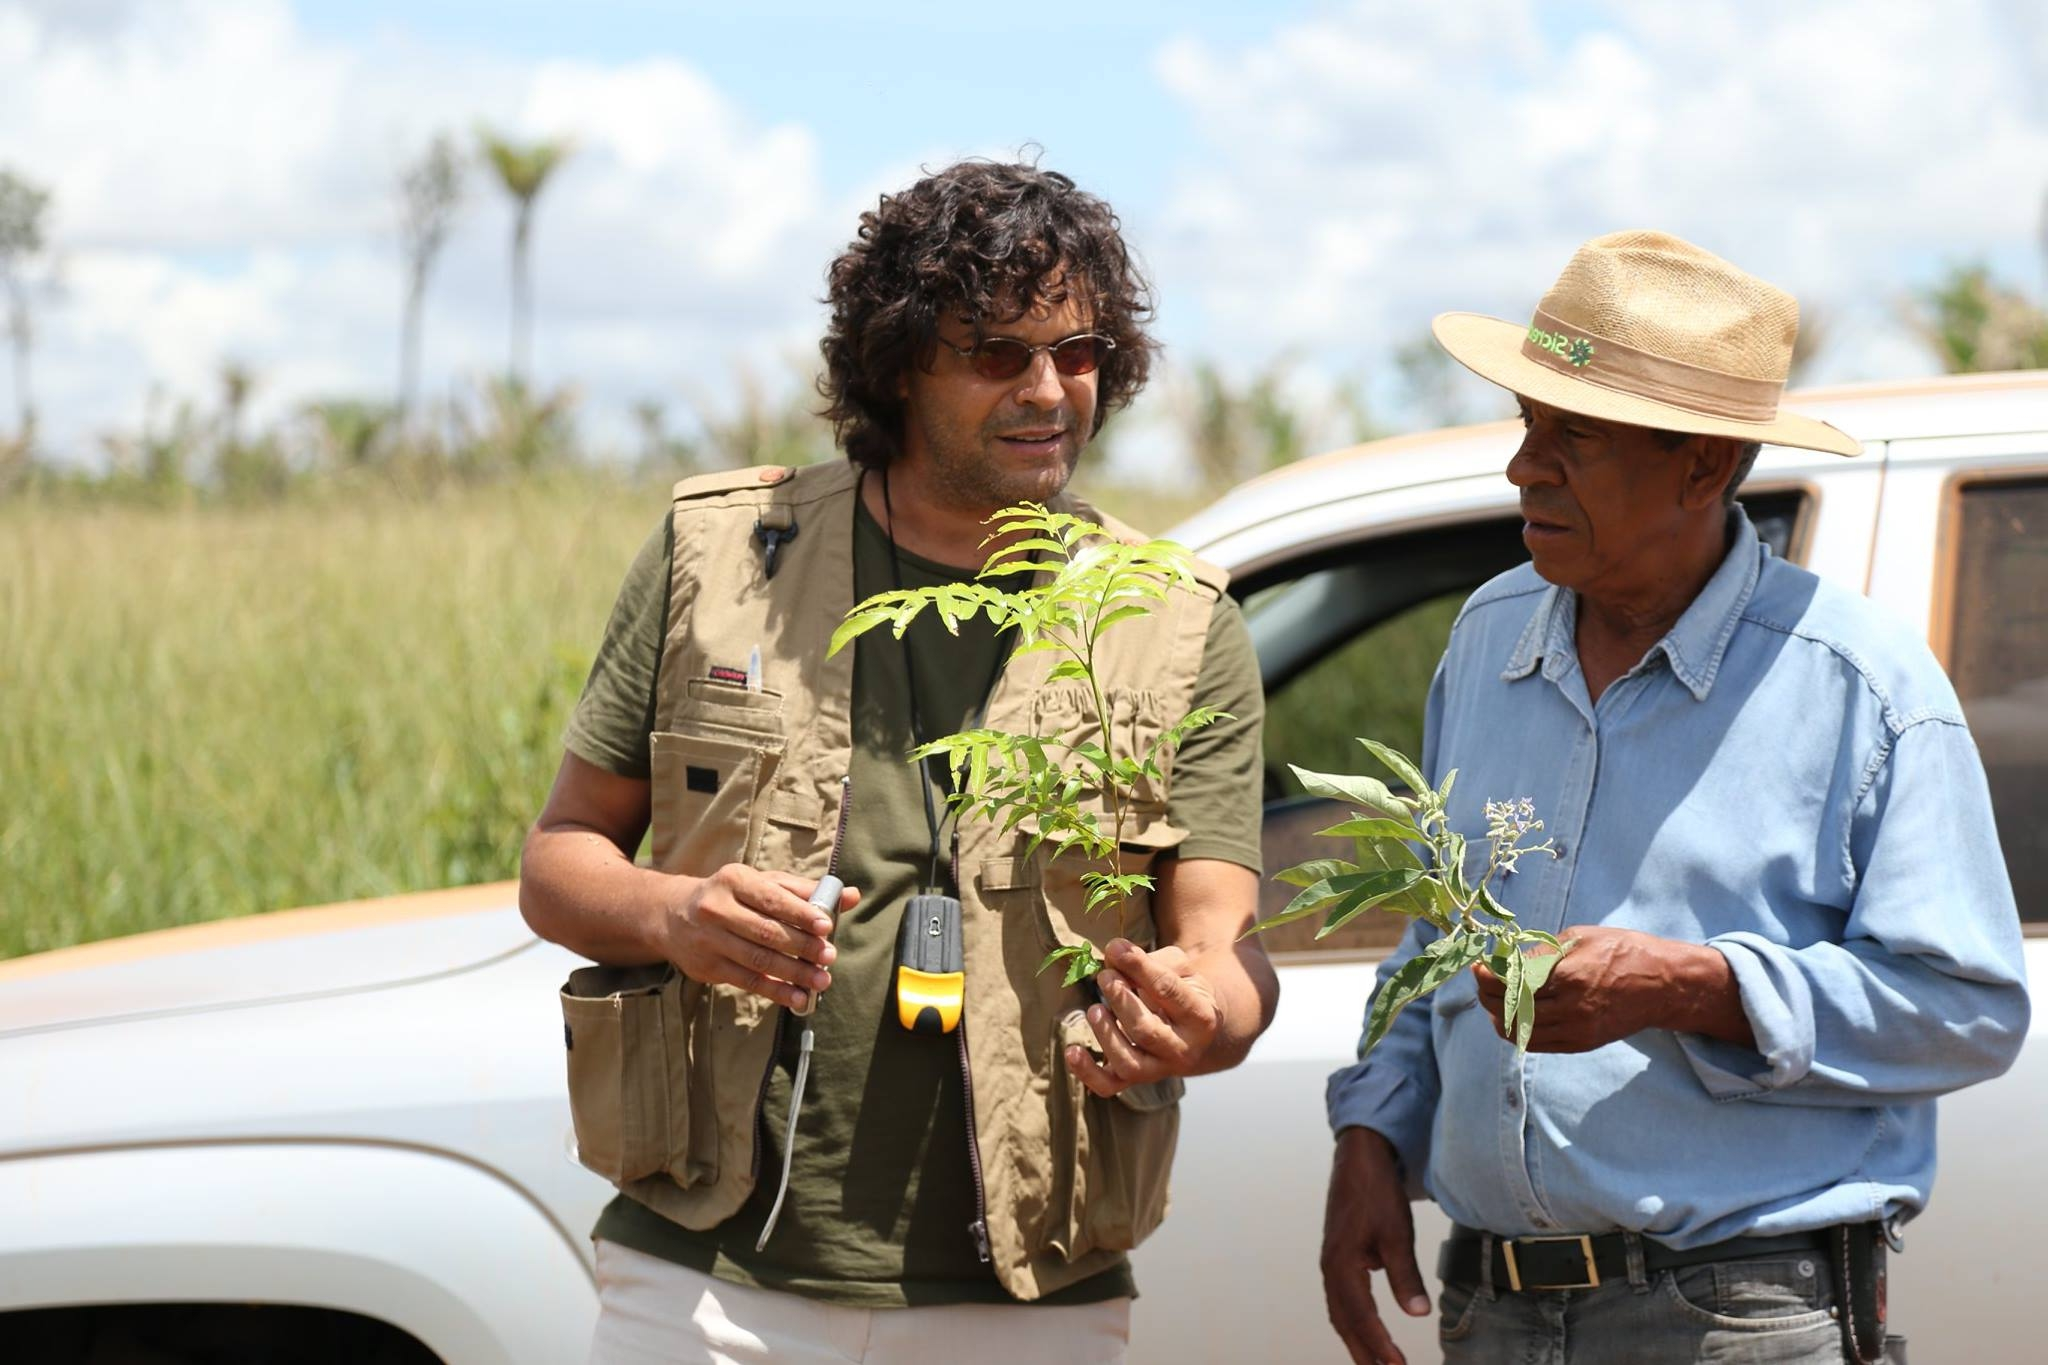 Dedicated Grant Mechanism for Indigenous Peoples, Traditional Communities and Quilombolas of the Cerrado (Savanna) - Project DocumentFunding: US$6.5 millionForest Investment Program Approval: June 2015World Bank Approval: March 2015Implementation: April 2015 - December 2020National Steering Committee: ListNational Executing Agency: Centro de Agricultura Alternativa do Norte de Minas (CAA/NM)Website | Climate Investment Funds | World BankFacebook | Twitter | Instagram | YouTube